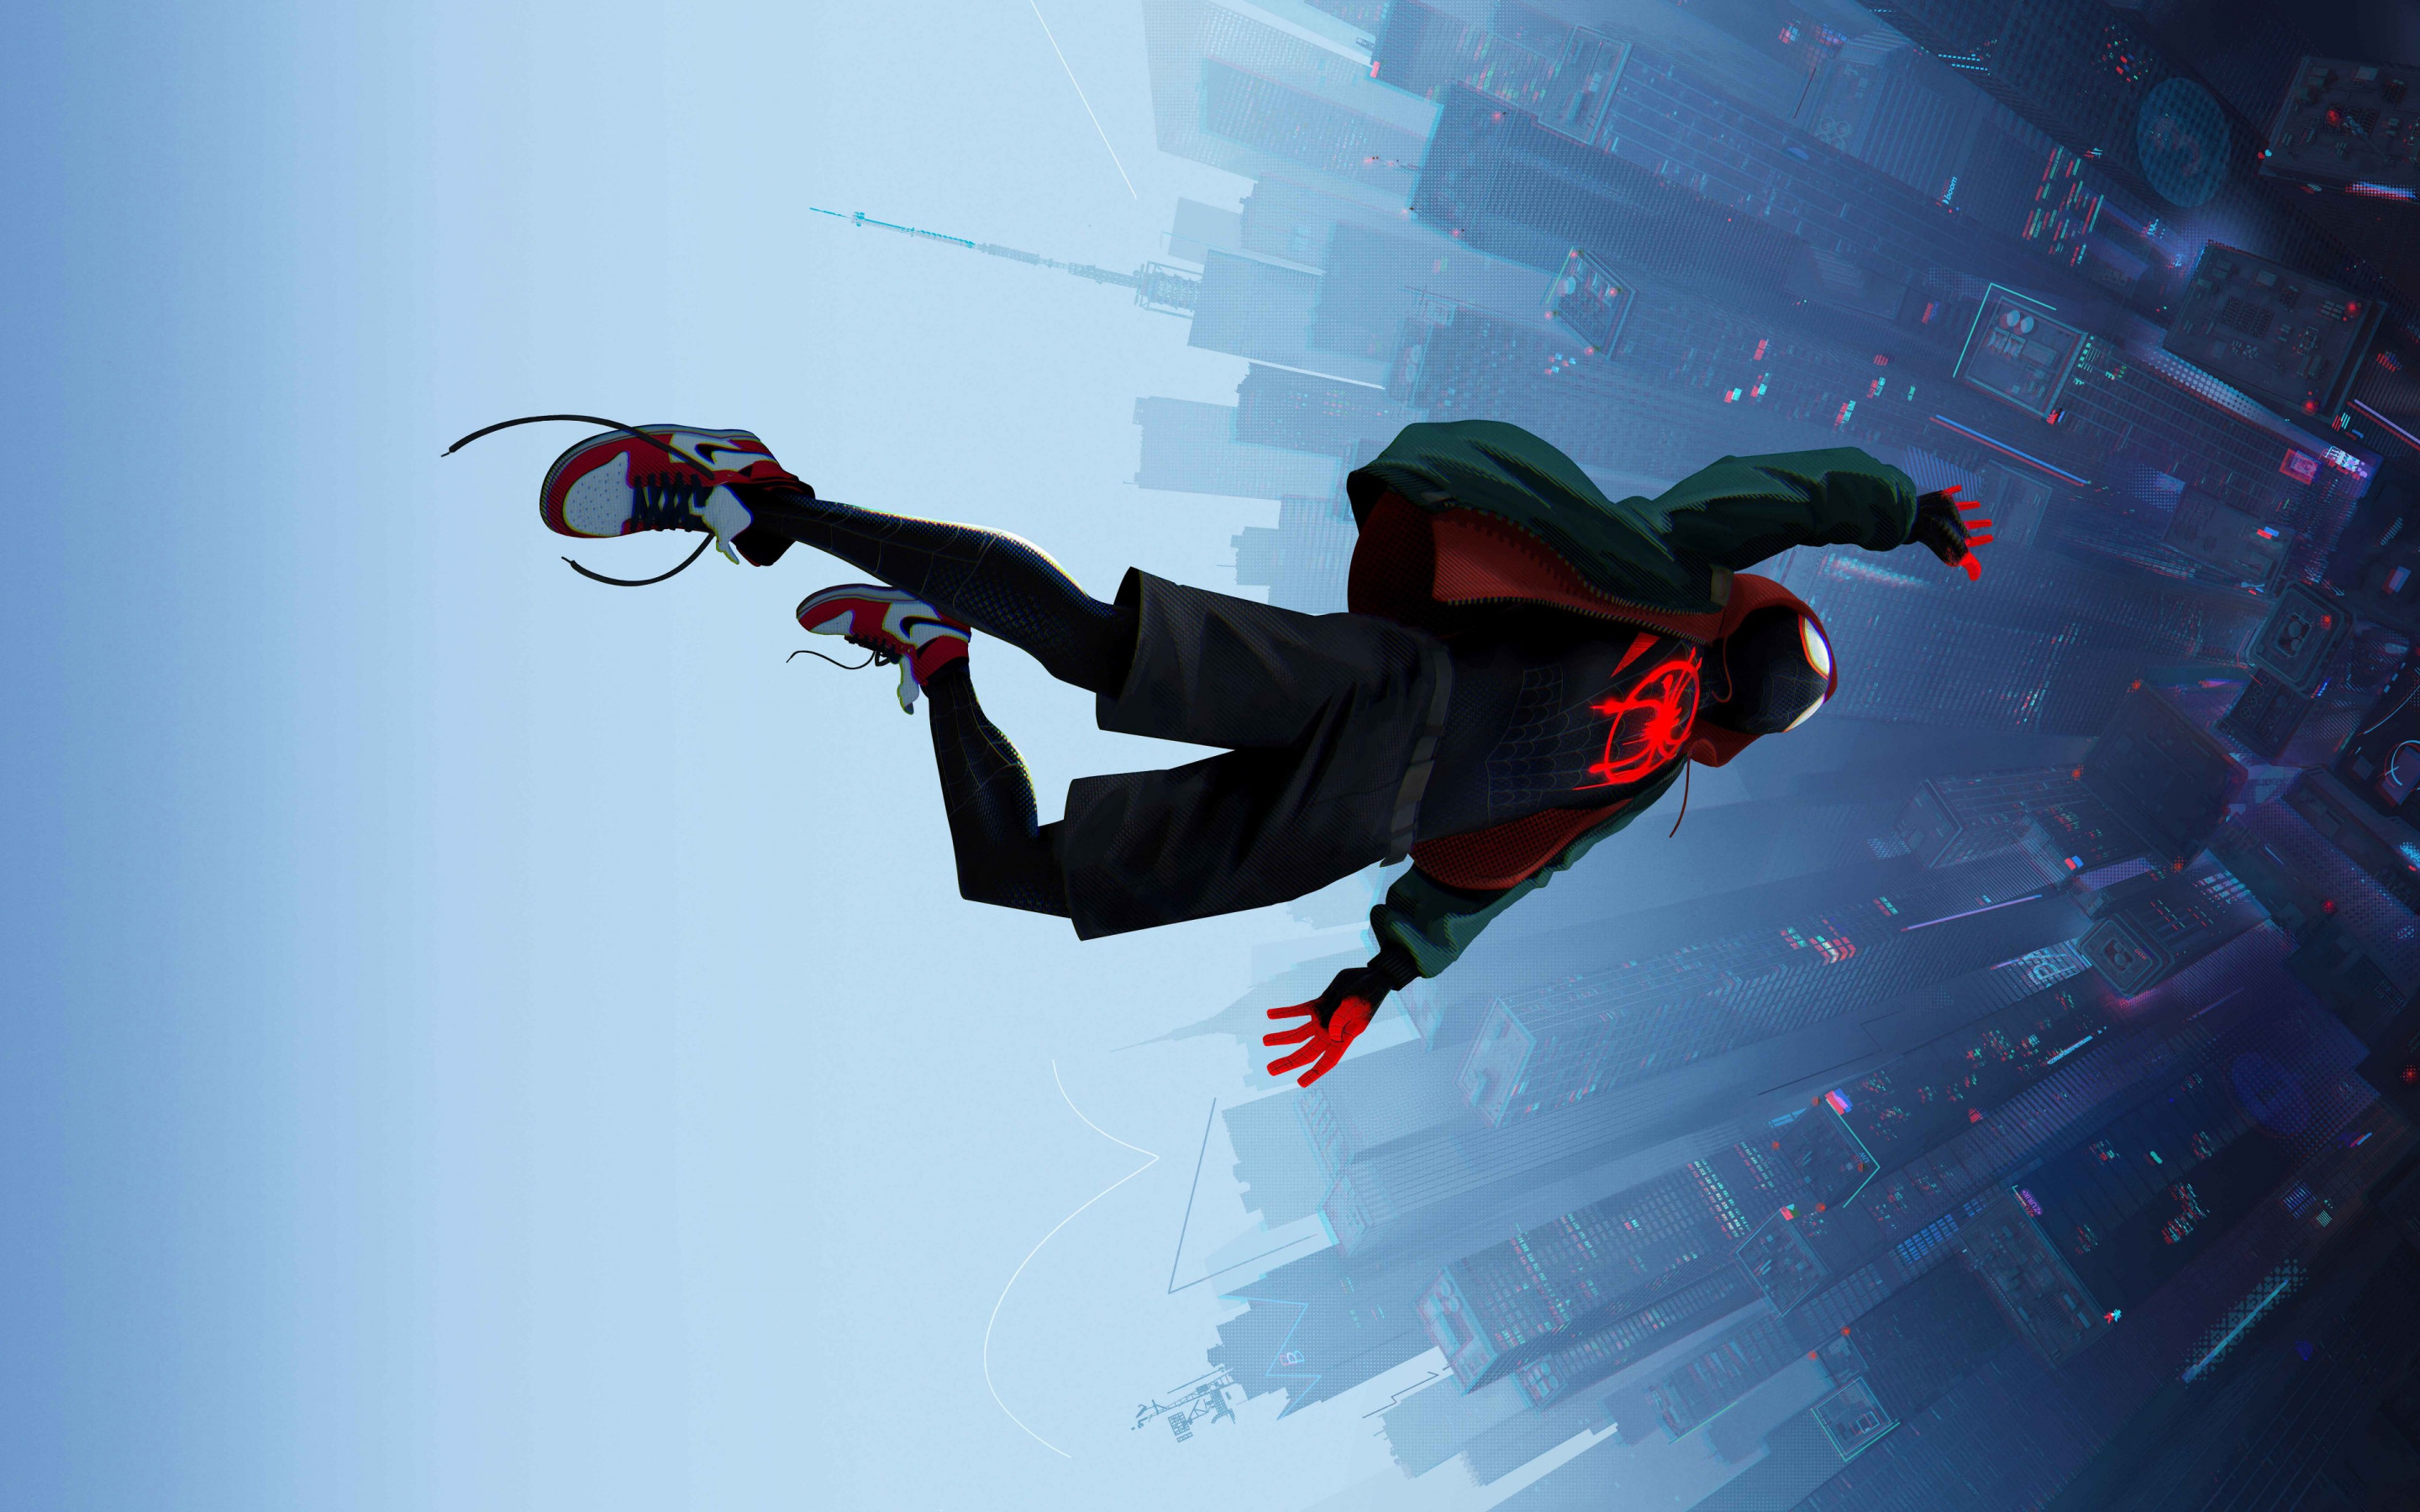 Spider Man: Into the Spider Verse 2018 wallpaper 2880x1800